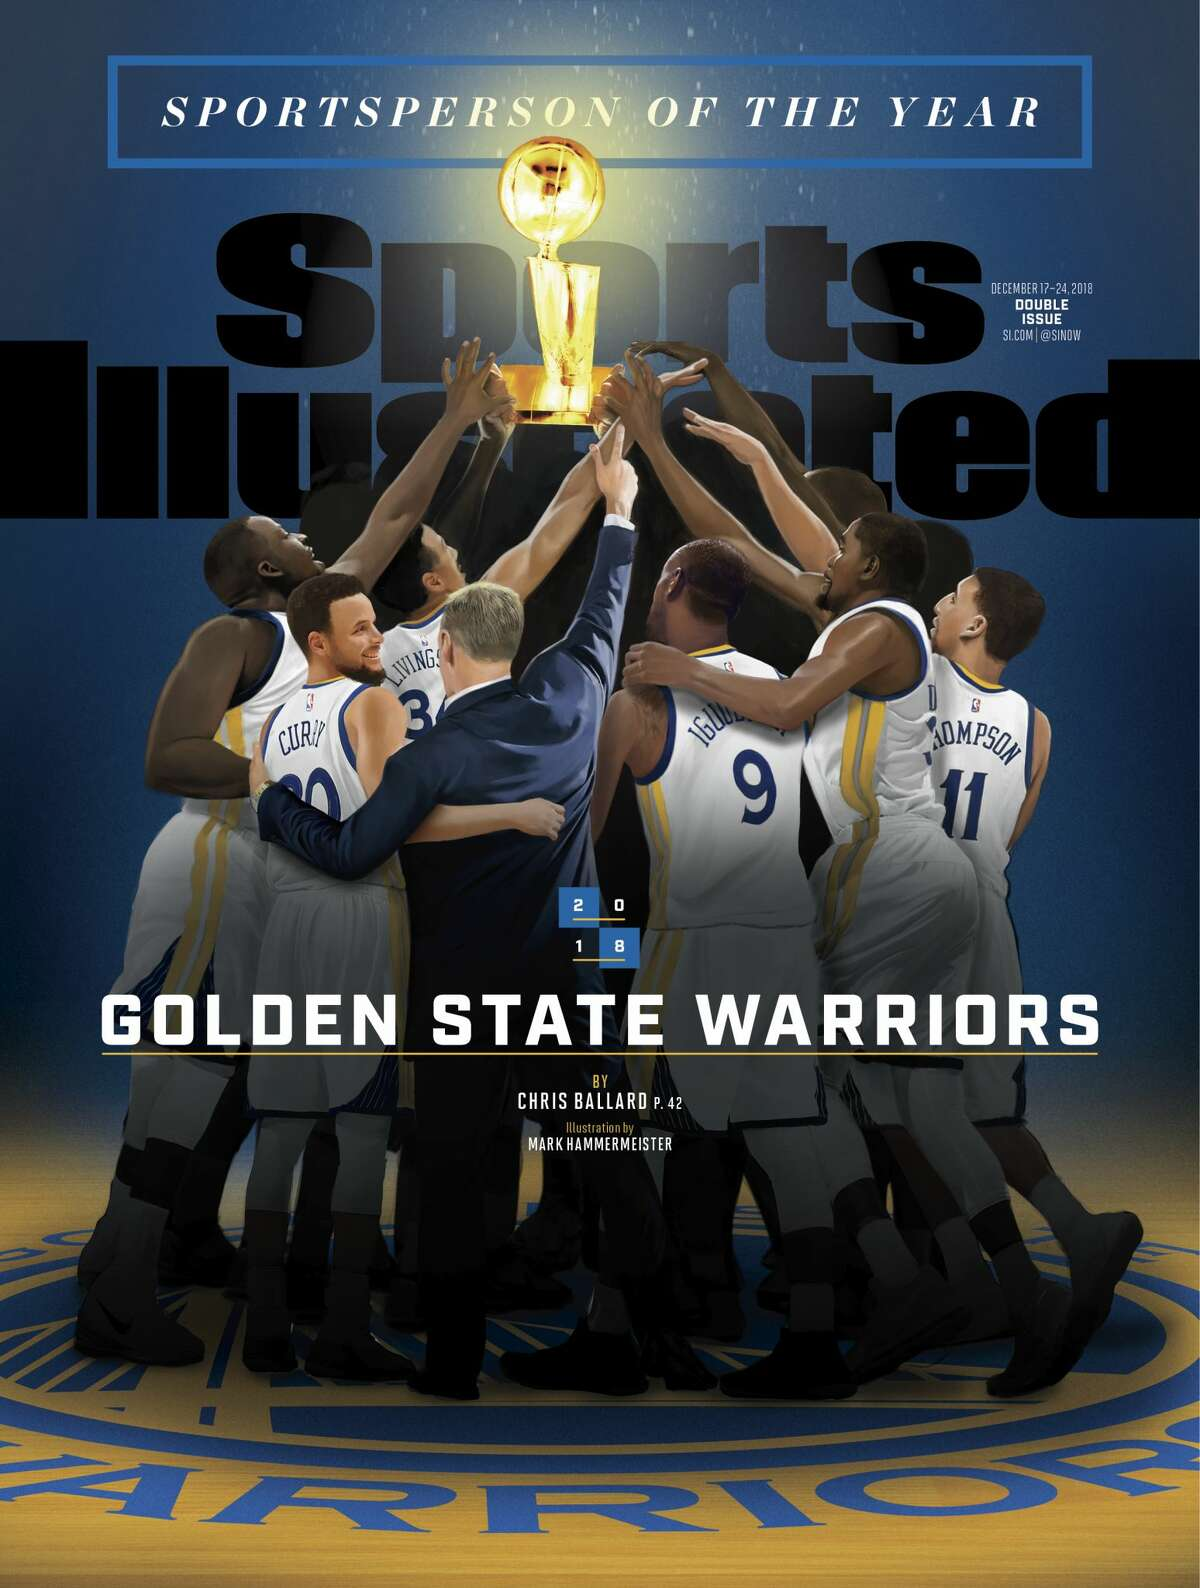 2018 Sports Illustrated Sportsperson of the Year The fourth team to be honored by the magazine, the Golden State Warriors were honored after winning their NBA championship for the third time in four years. The team was also recognized for its